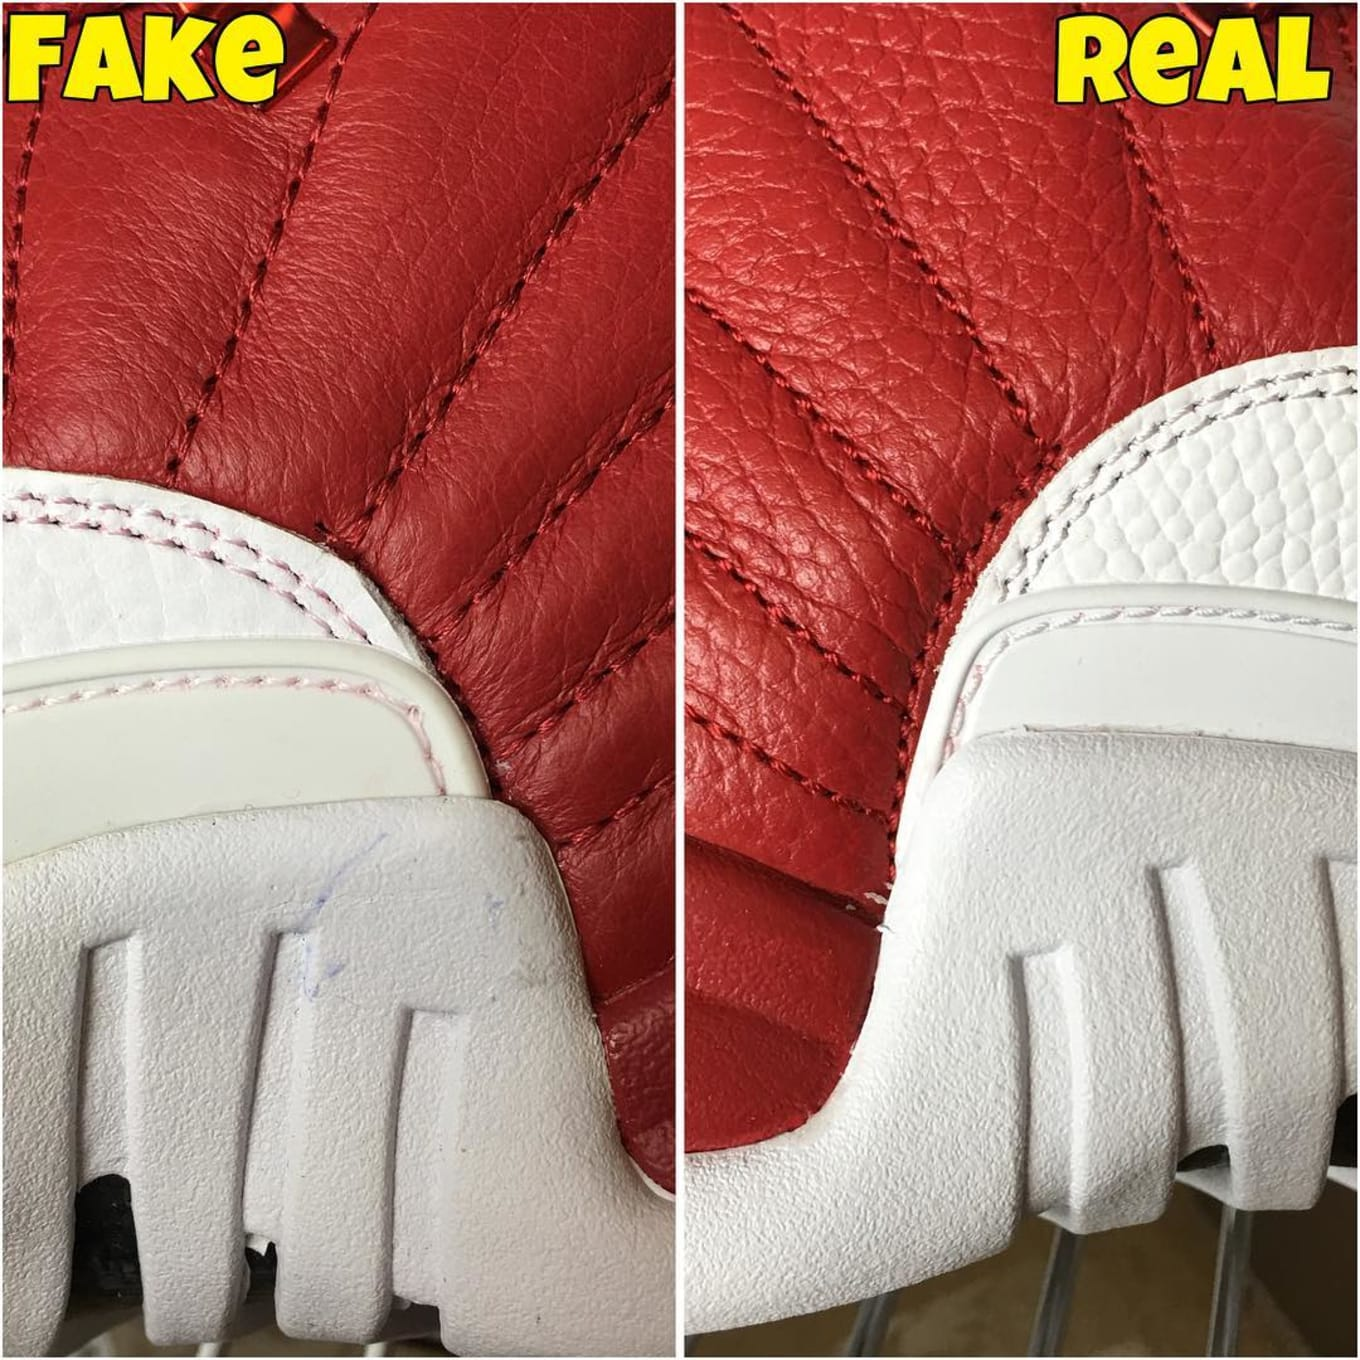 best service 4f648 9c7ca Air Jordan XII 12 Gym Red Alternate Real Fake Legit Check (8)